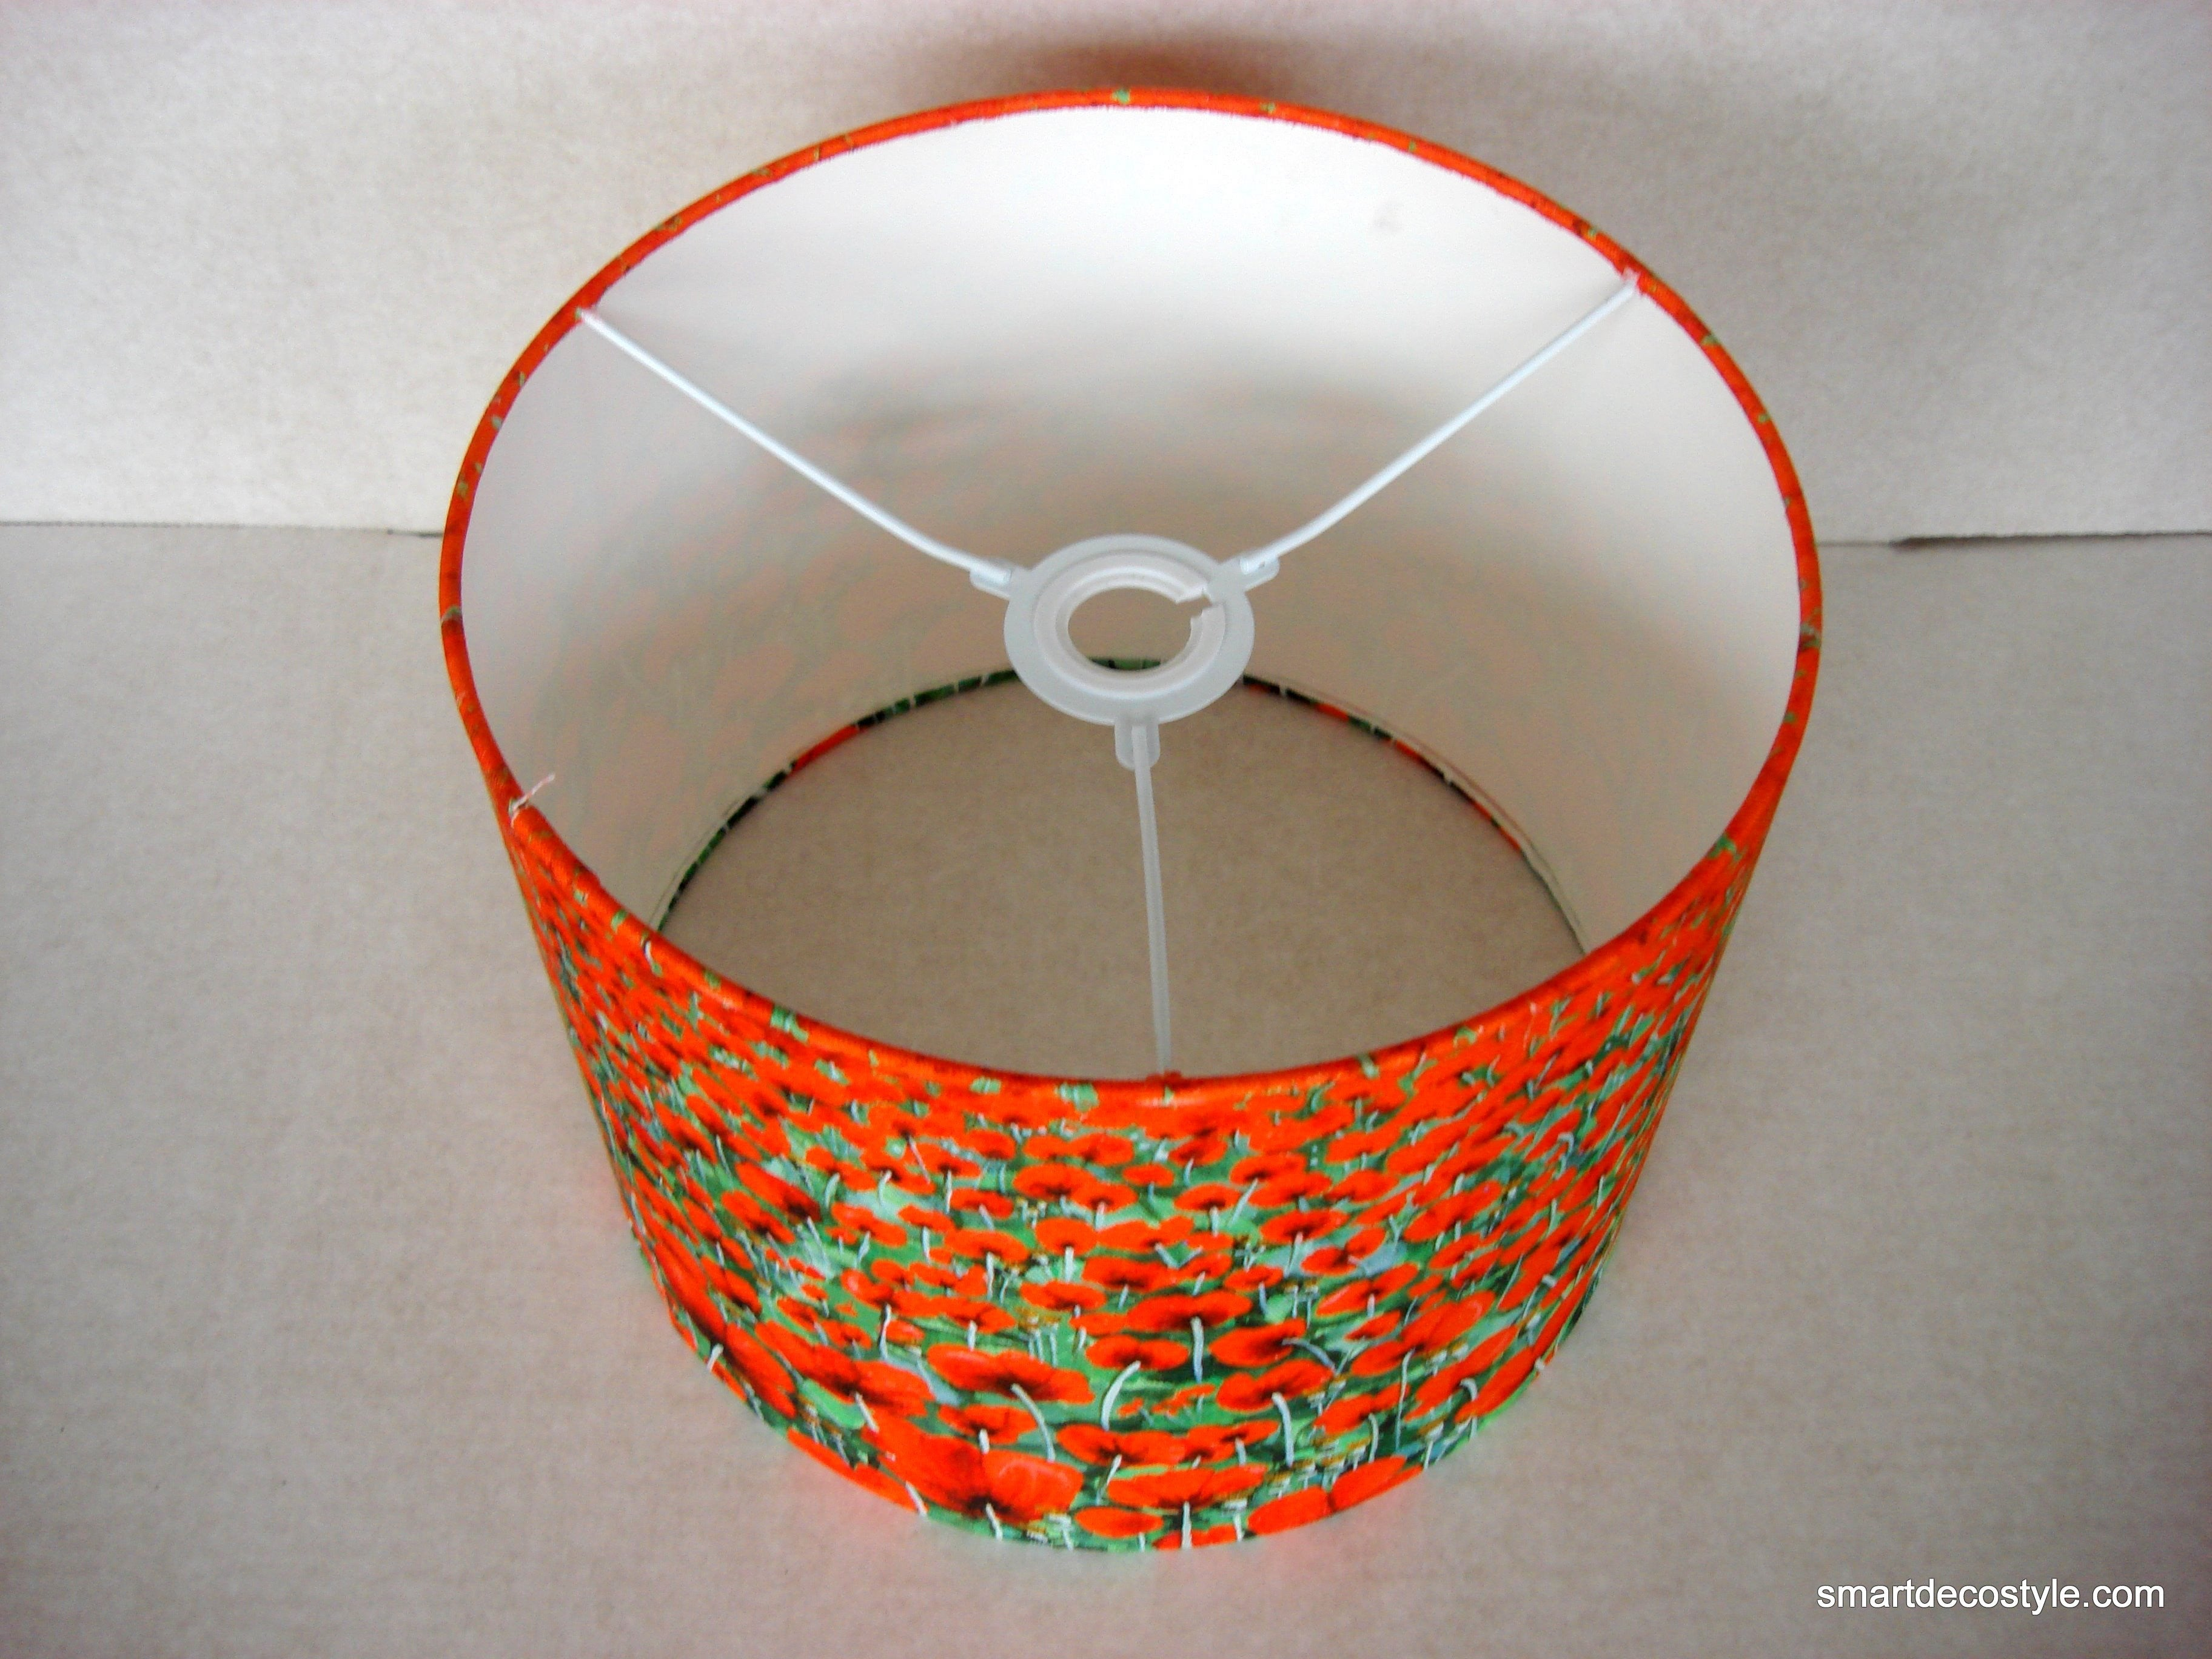 Lampshade - Blowing Poppies